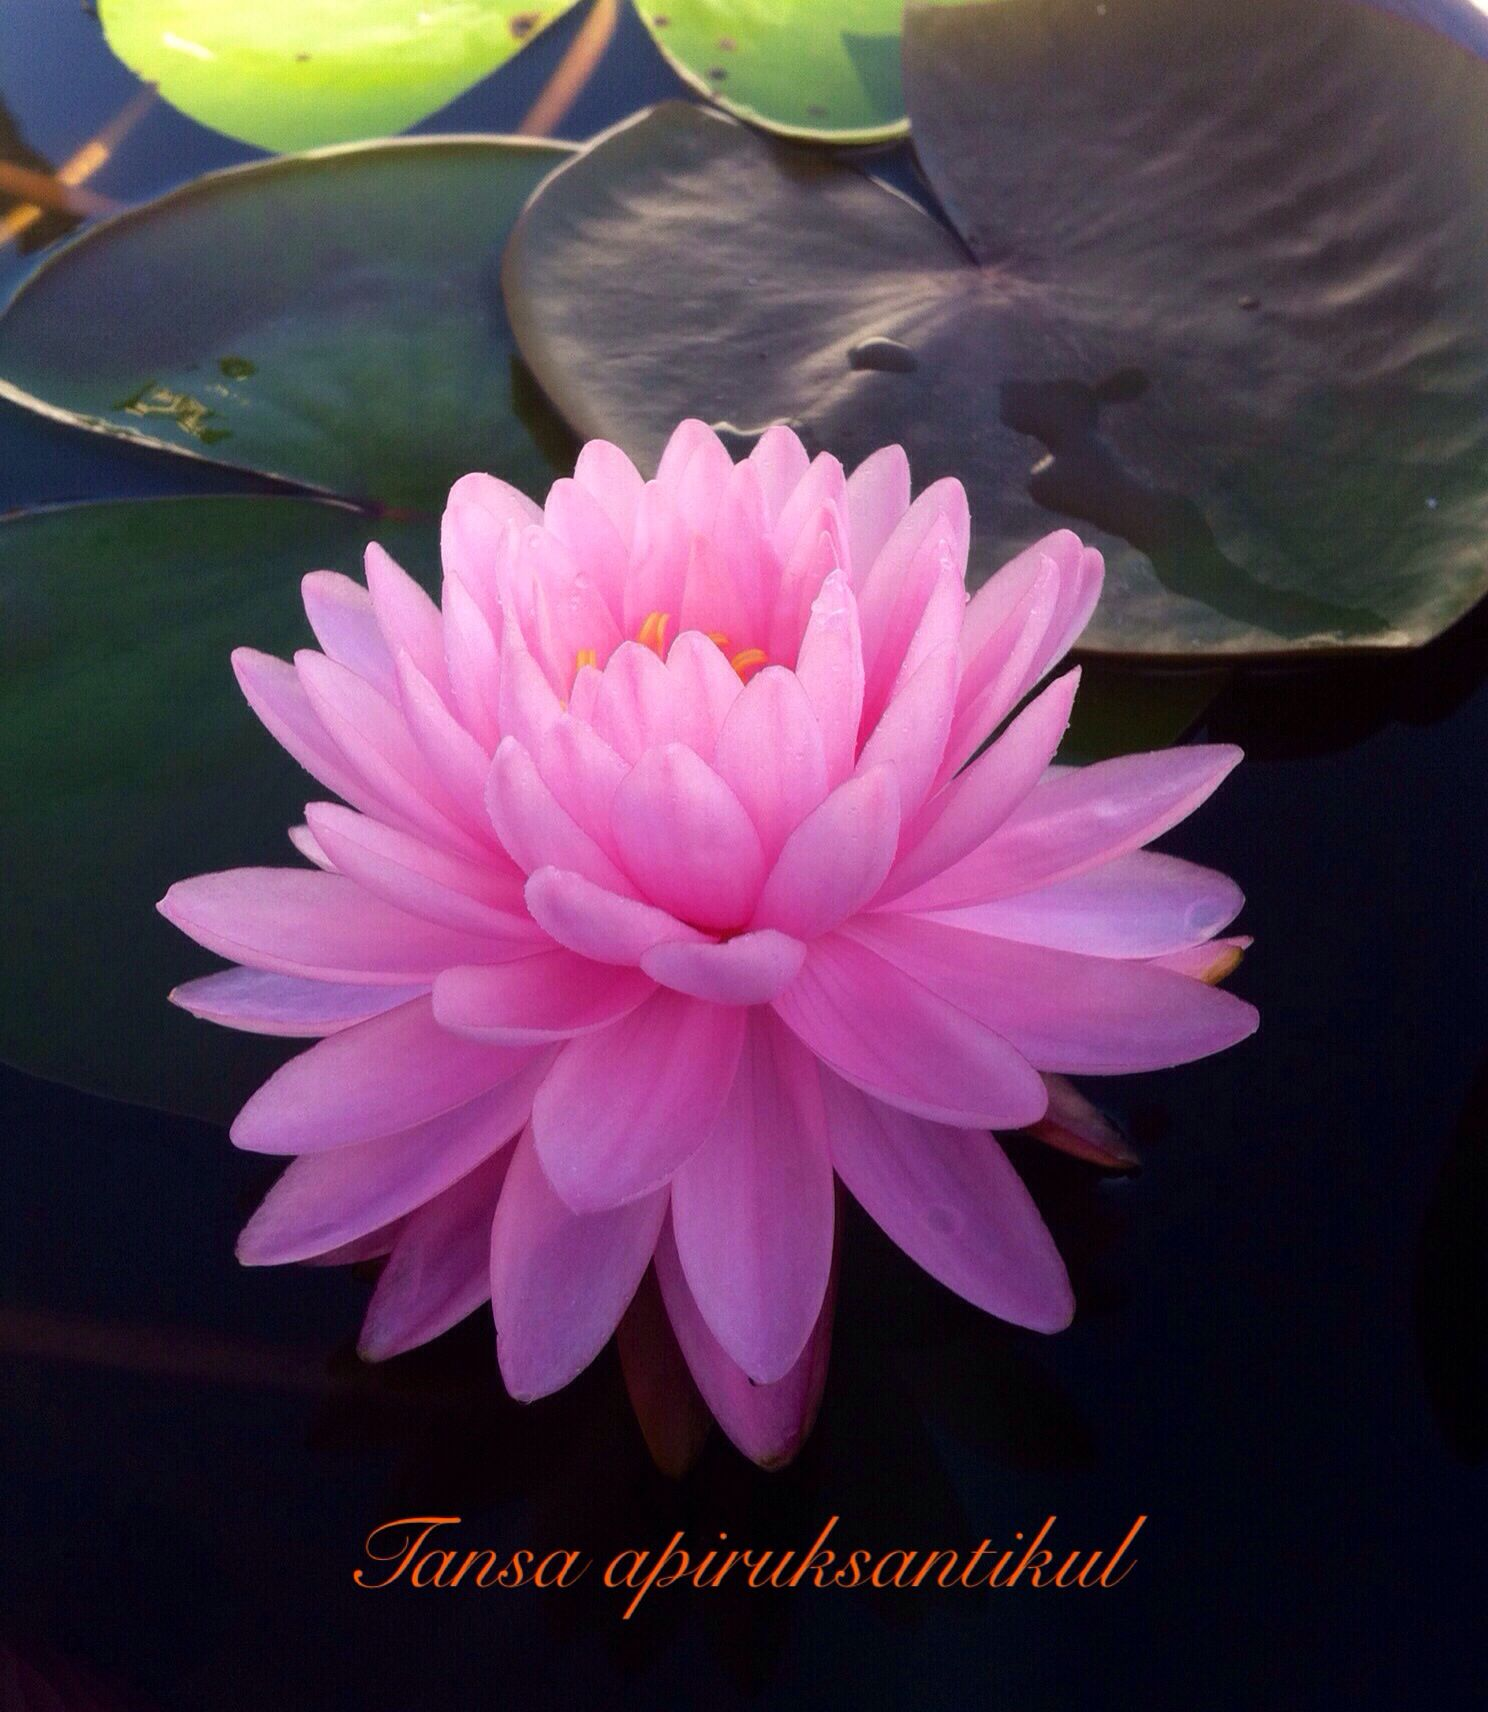 Nymphaeapink Pom Pom Tansa Waterlily Pinterest Water Lilies